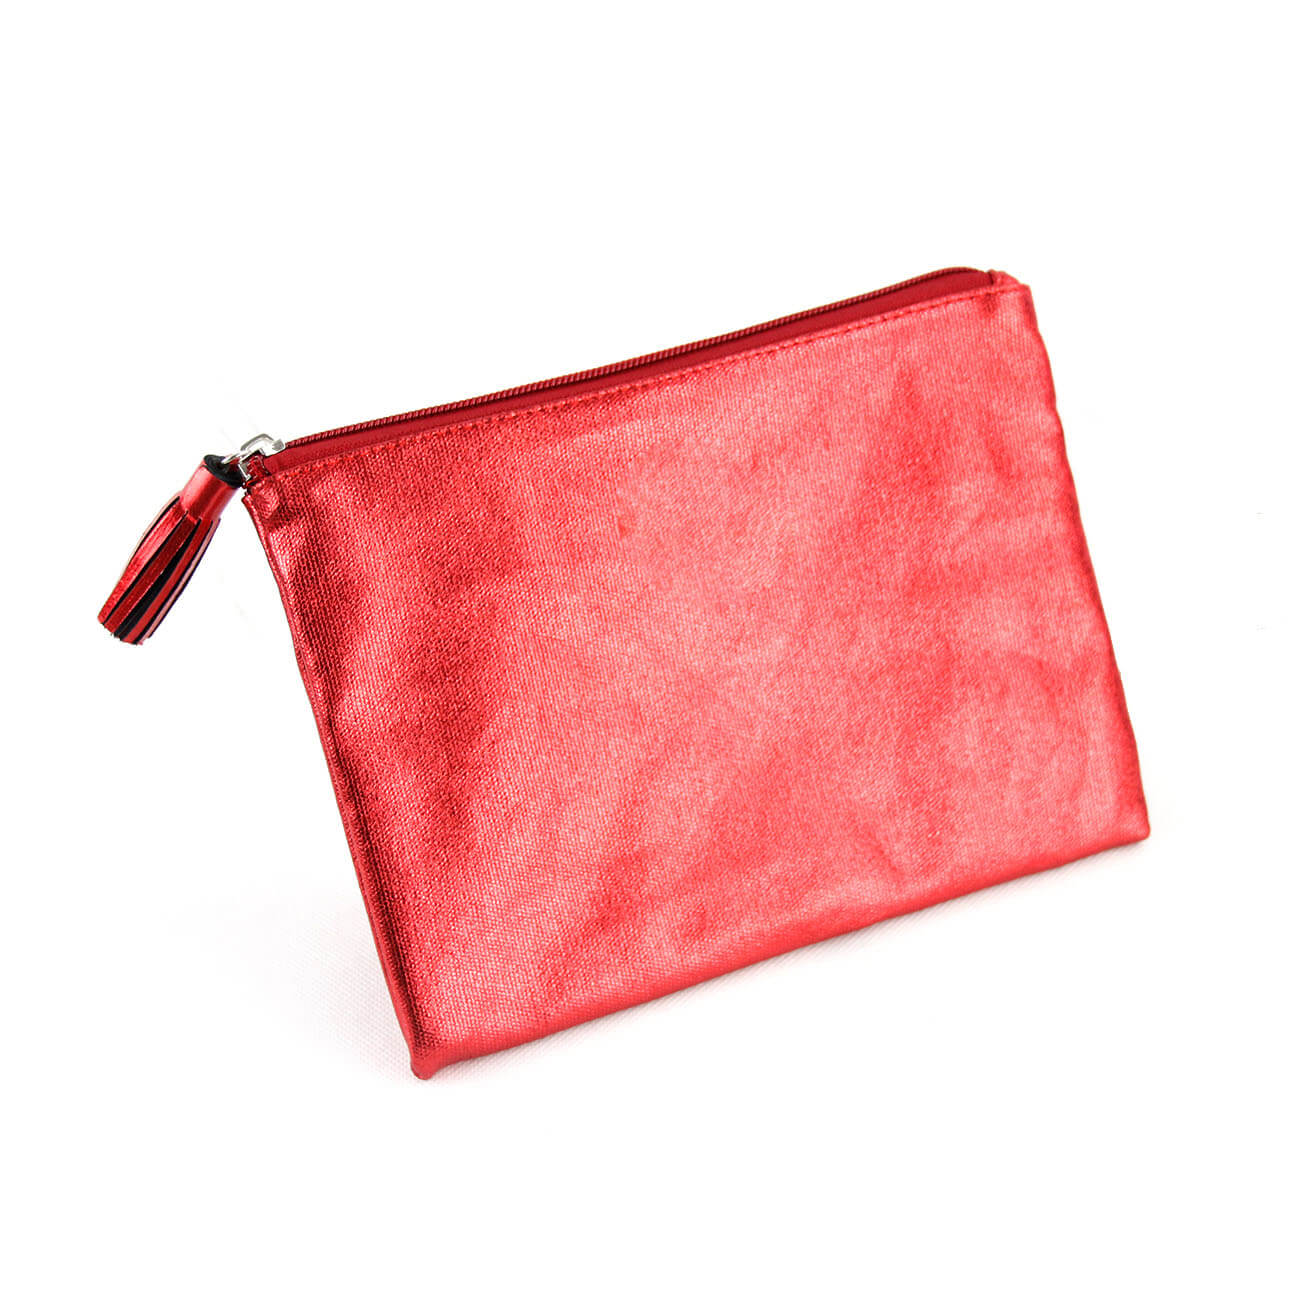 Laminated Canvas Cosmetic Pouch